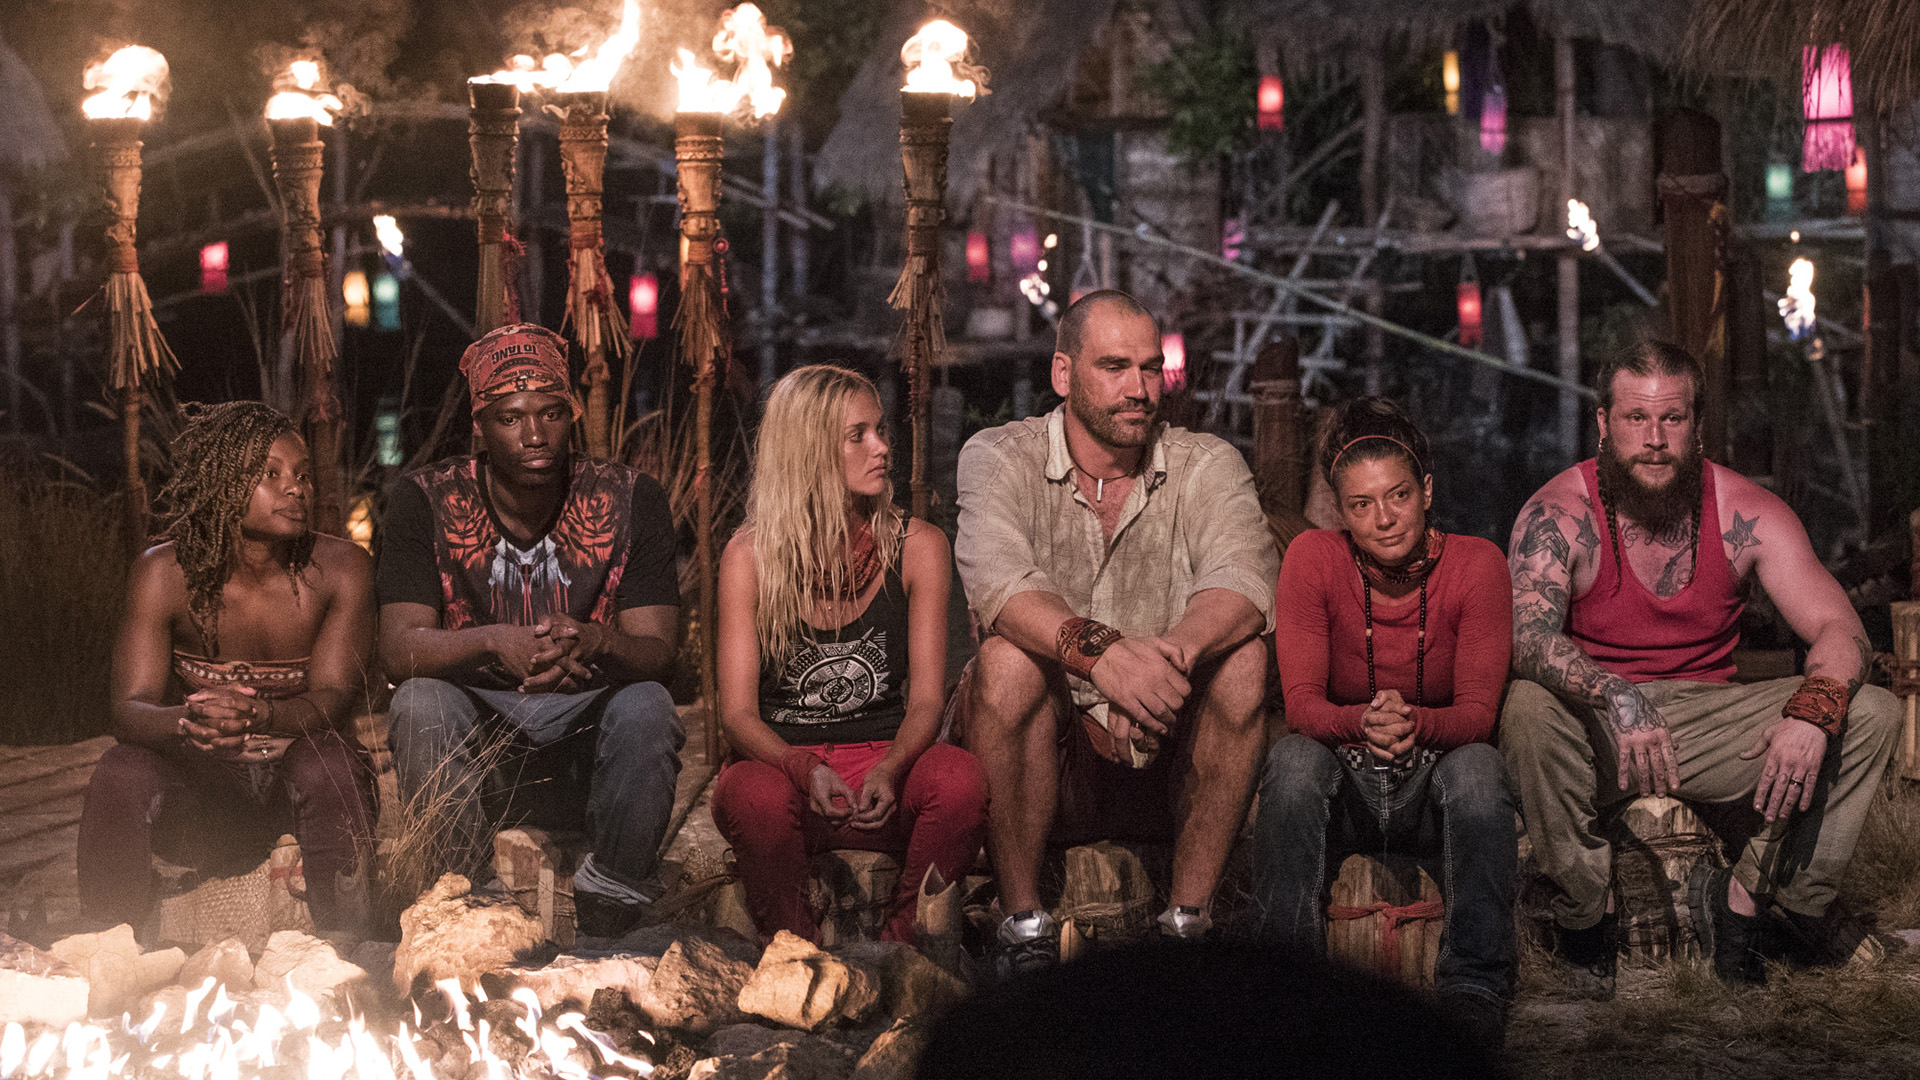 5. How did it feel to be cast on Survivor?